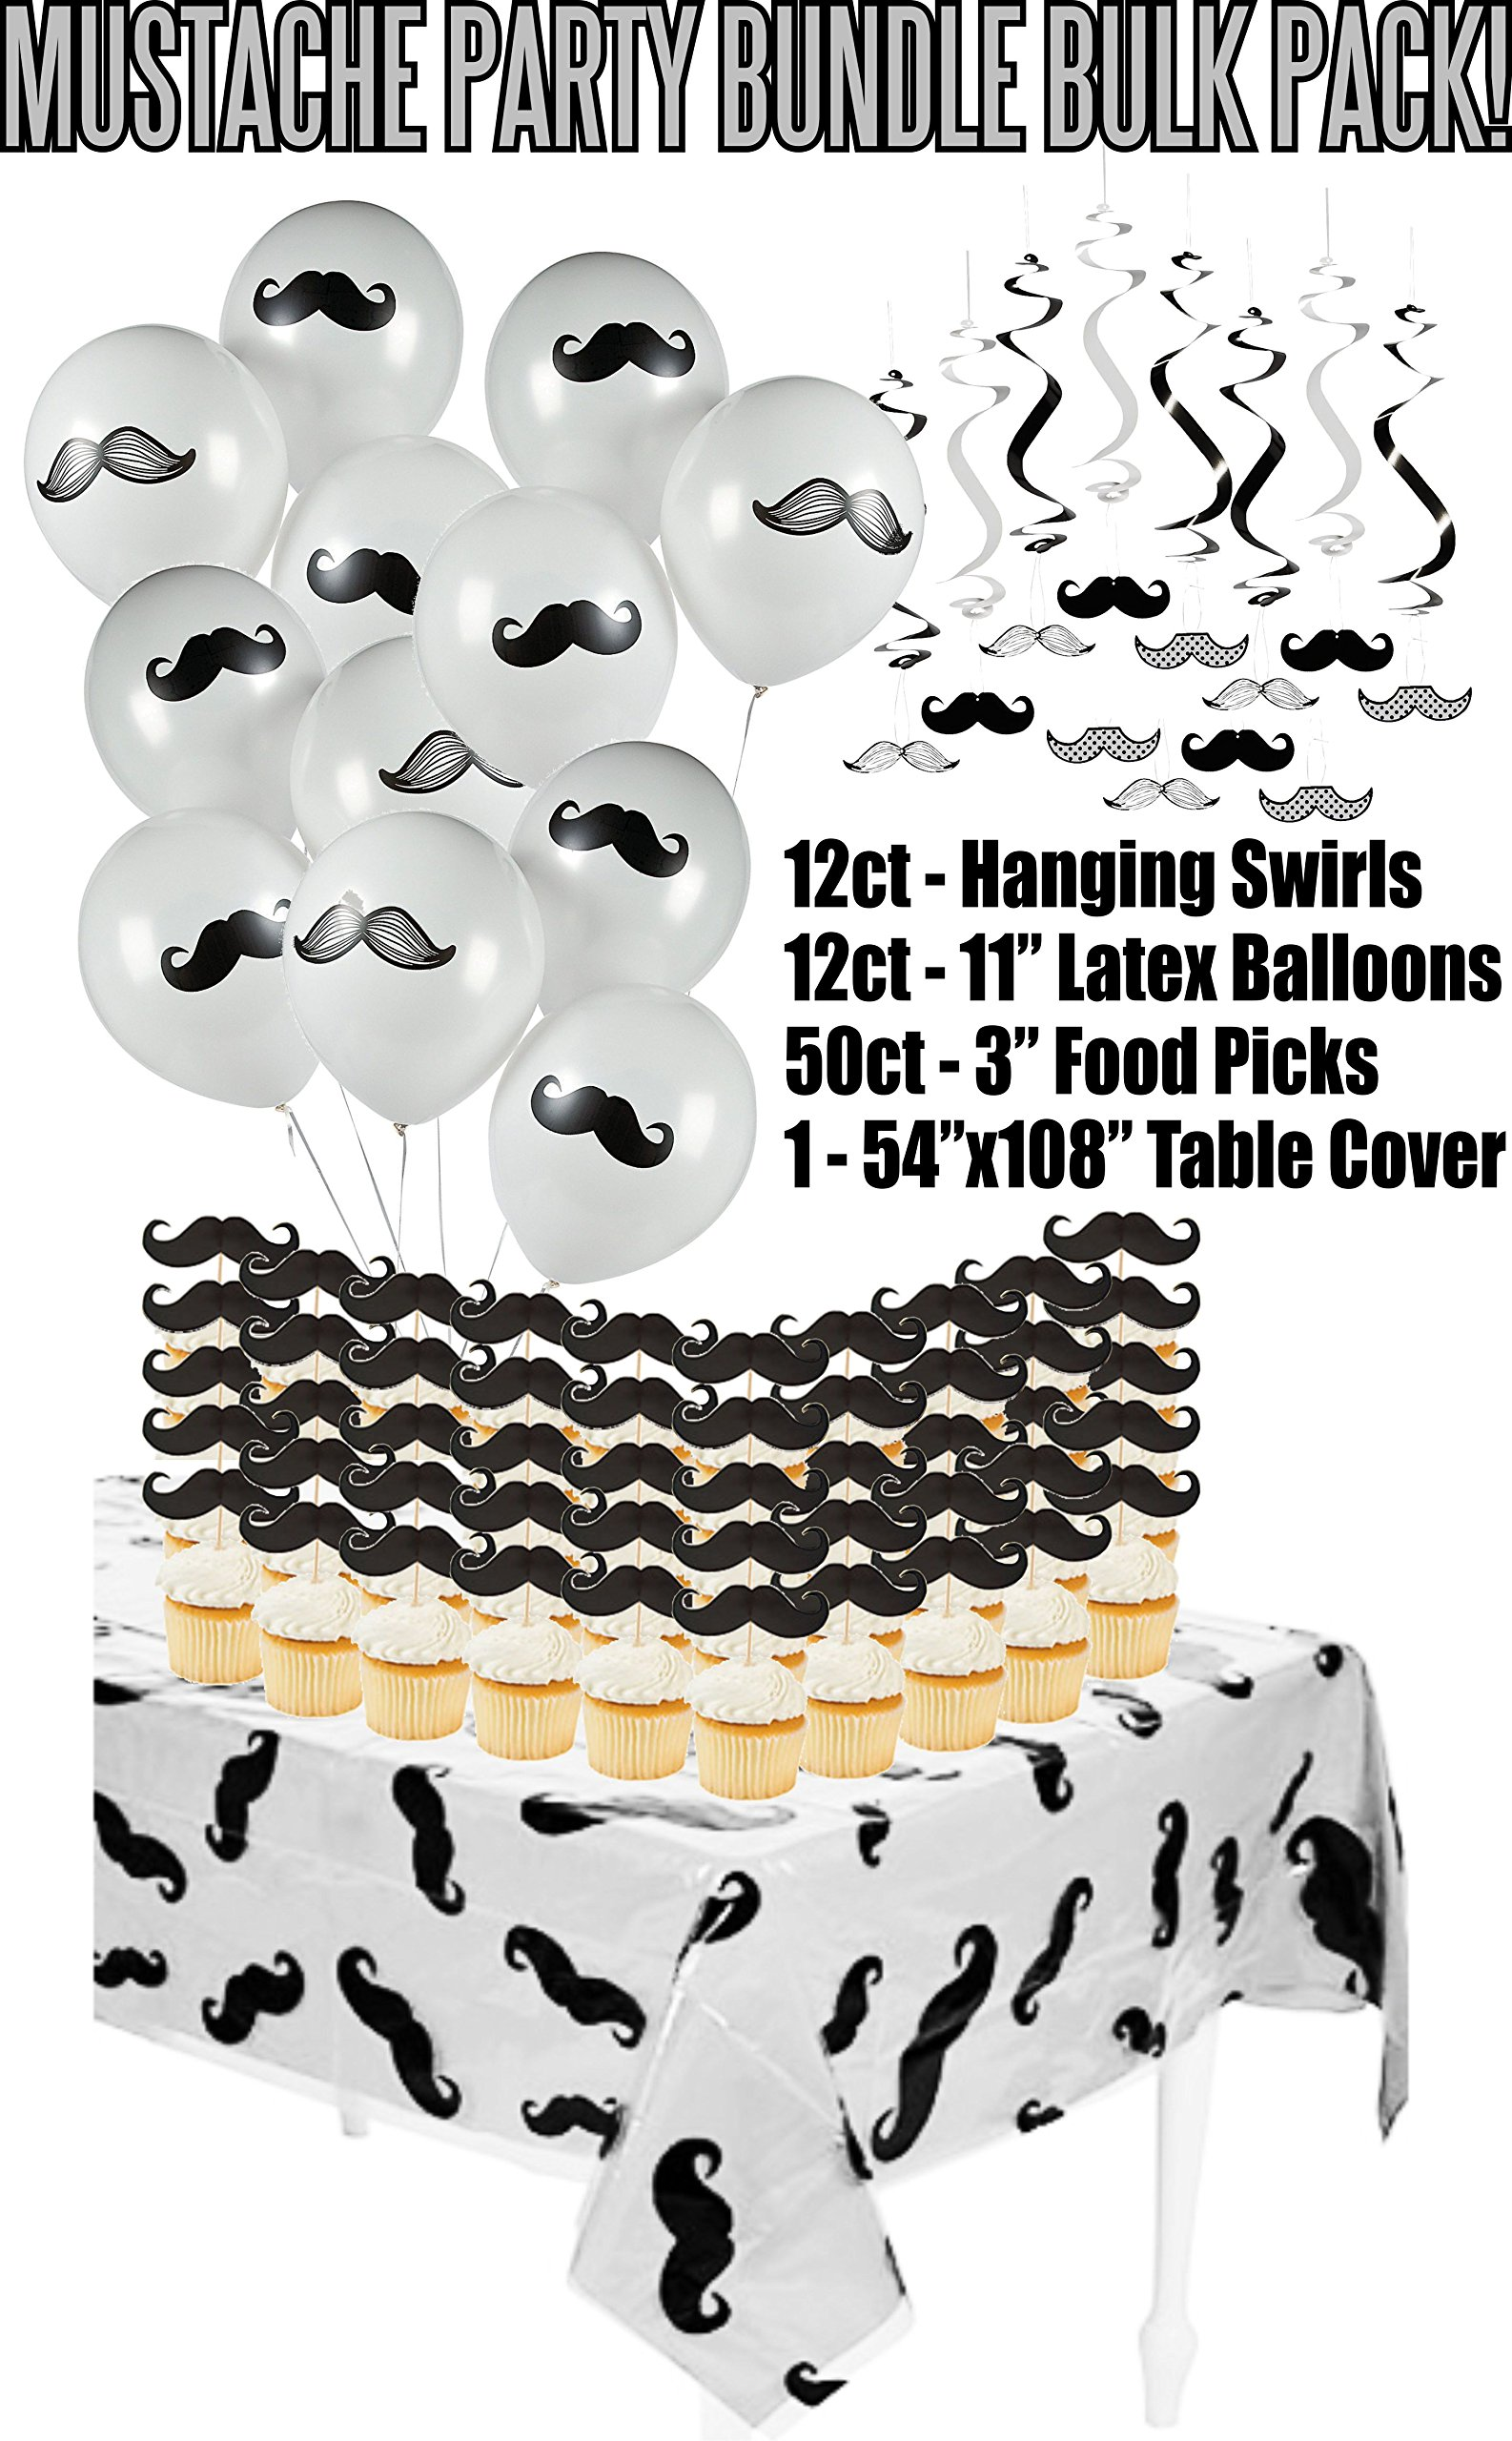 Mustache Baby Shower Birthday Party Supply Bundle Bulk Pack Includes 12 Swirl Decorations, 50 Mustache Food Picks, 12 Latex Balloons, and 1 Mustache Table Cover (BONUS! Matching Party Straw Pack) by Everyday Party Bundles (Image #1)